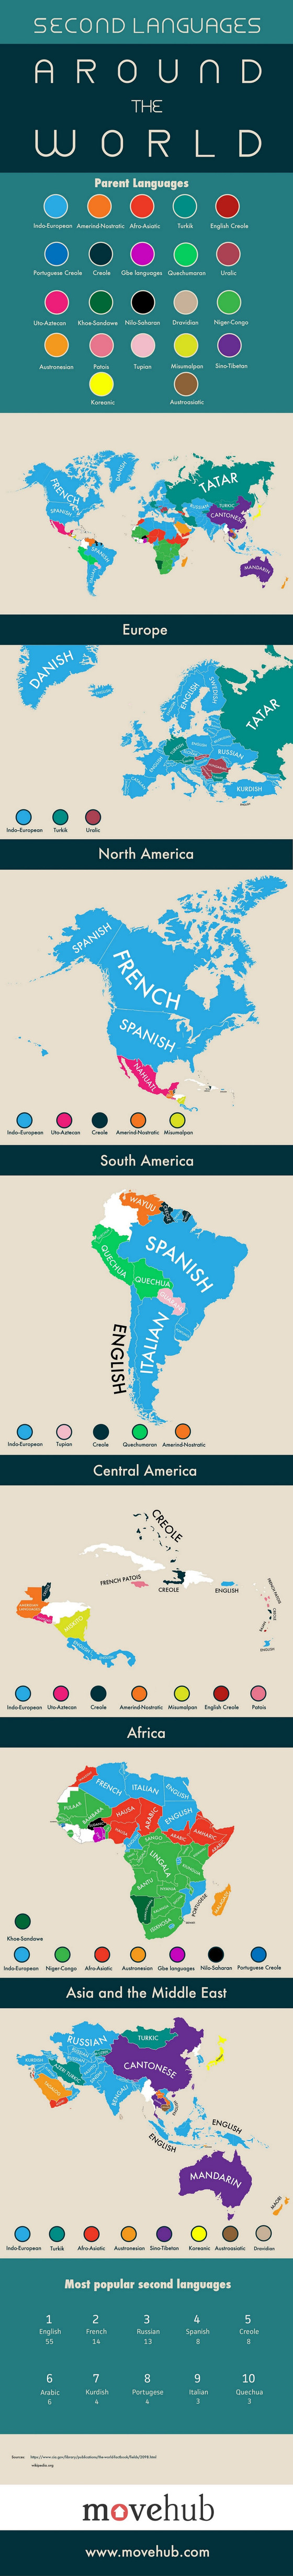 The Second Languages Of Every Part Of The World